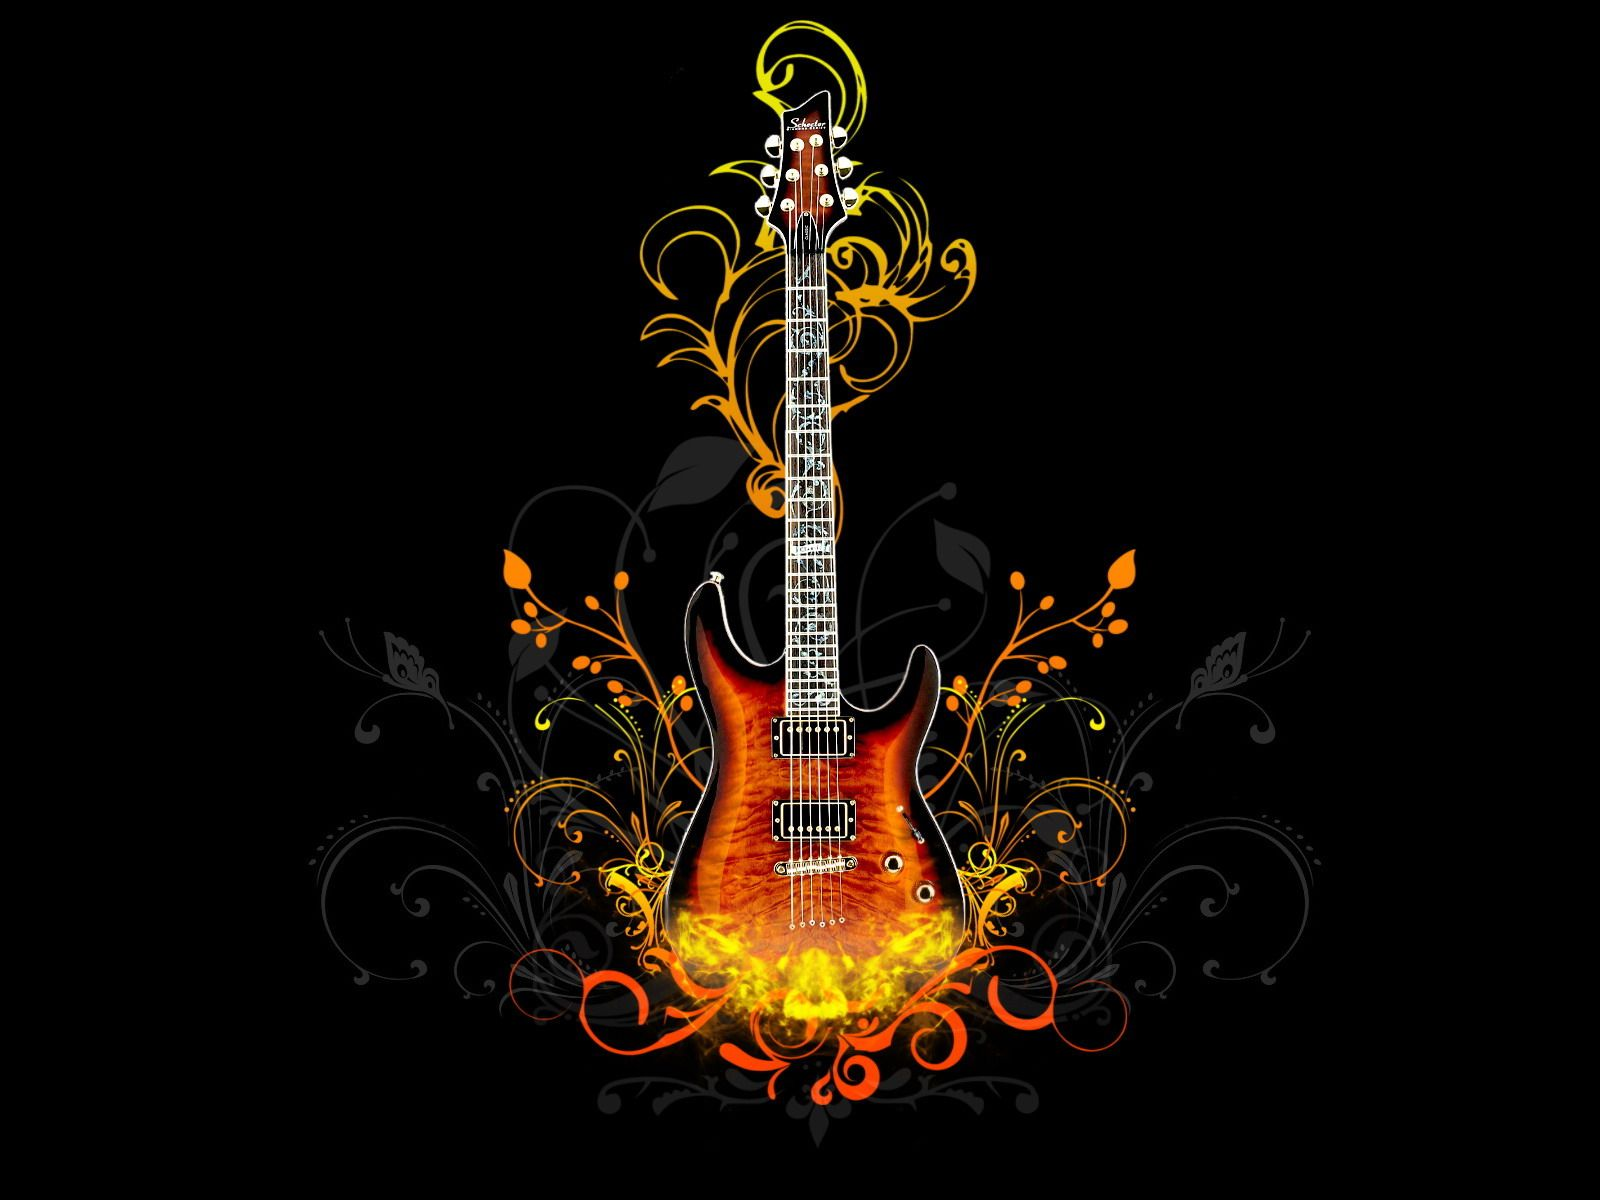 Music Background Wallpaper 067